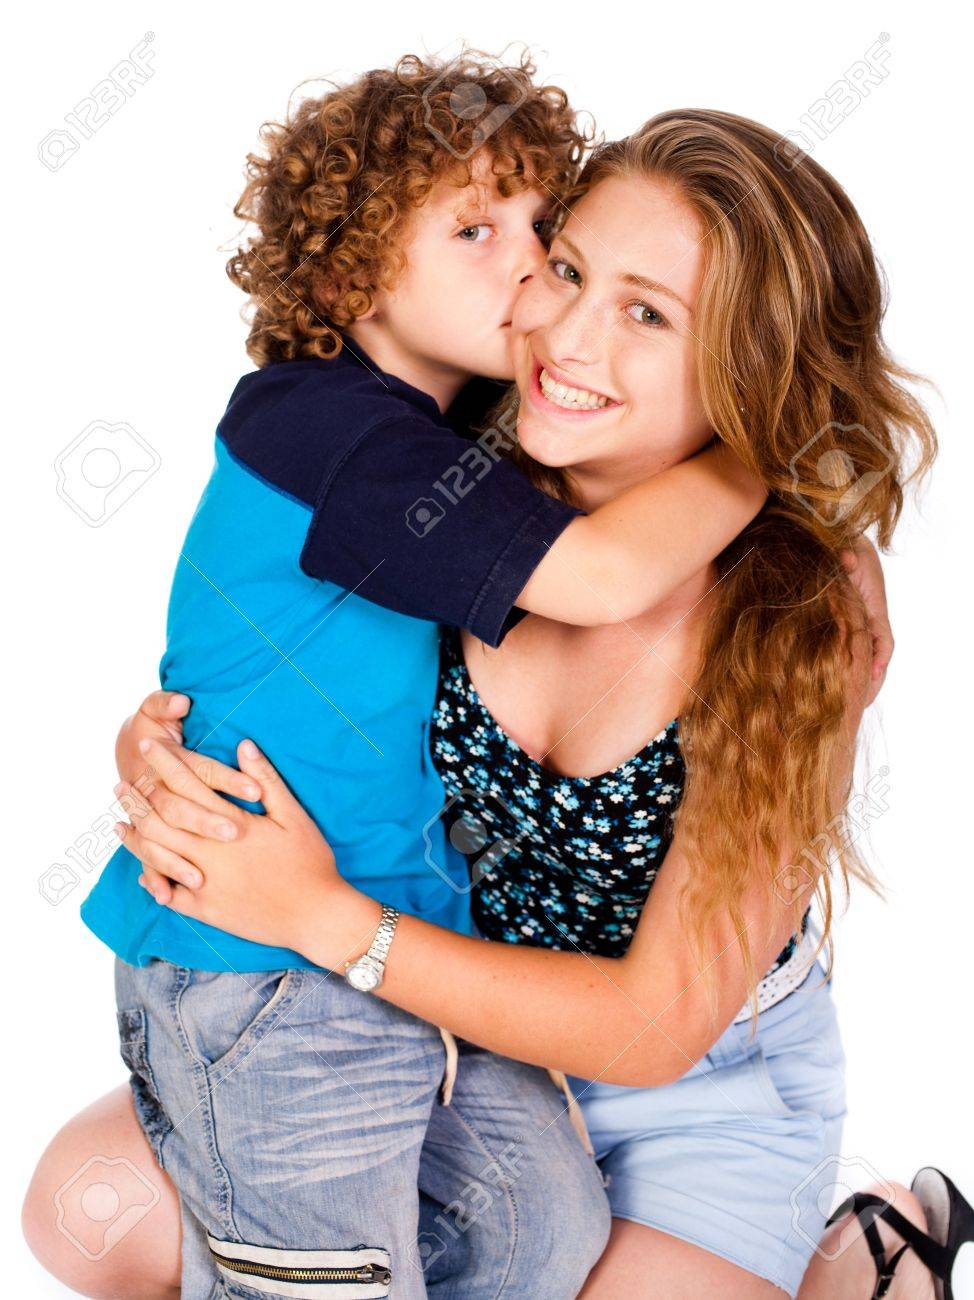 Young kid kissing his mom and looking at camera, isolated on white.. - 9796462